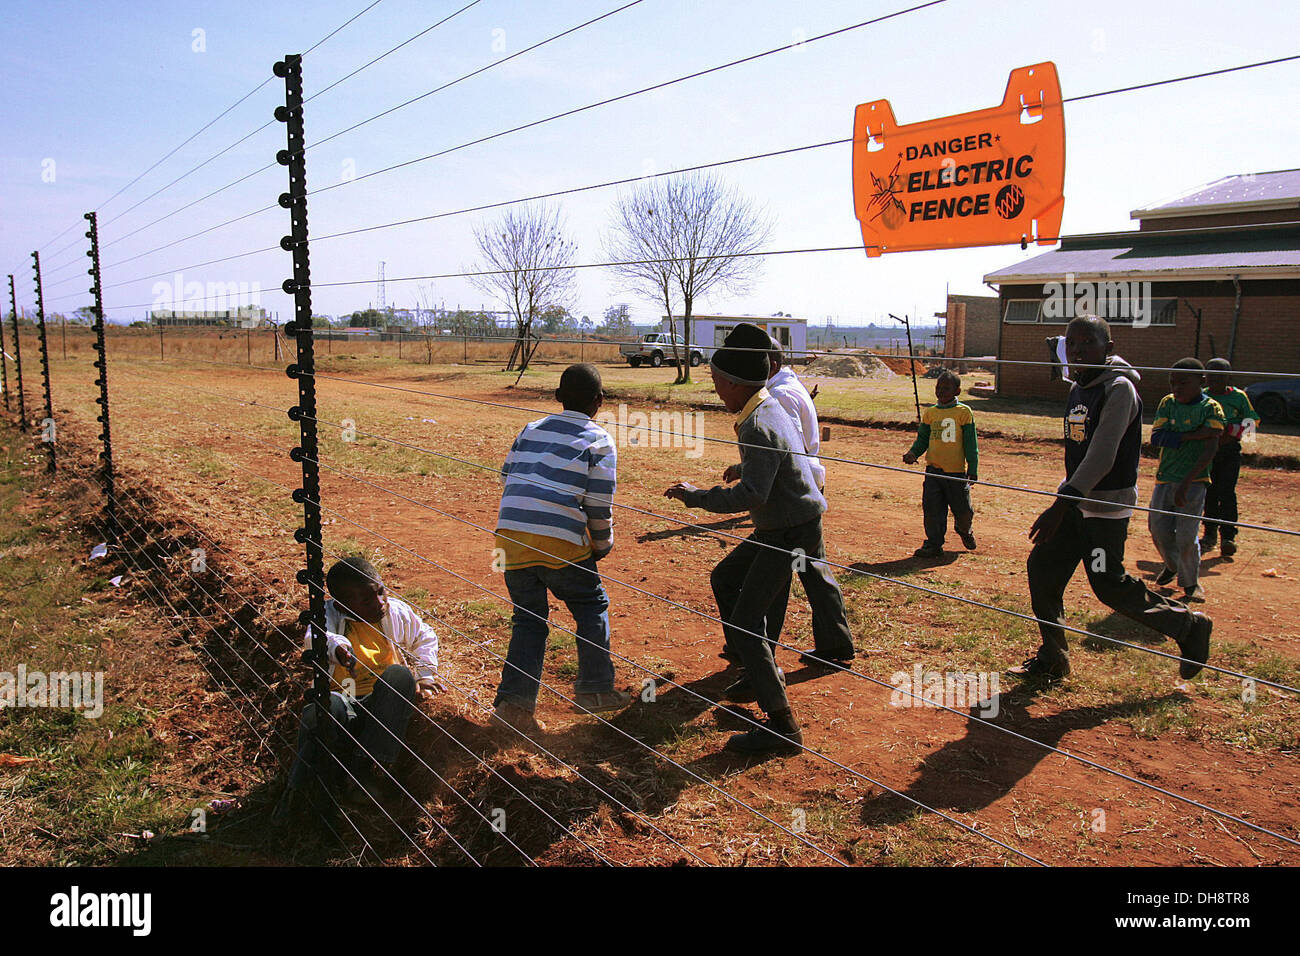 Pupils from the Thabo Vuyo school for mentally challenged children play soccer beside an electric fence at Mashoheng, South - Stock Image